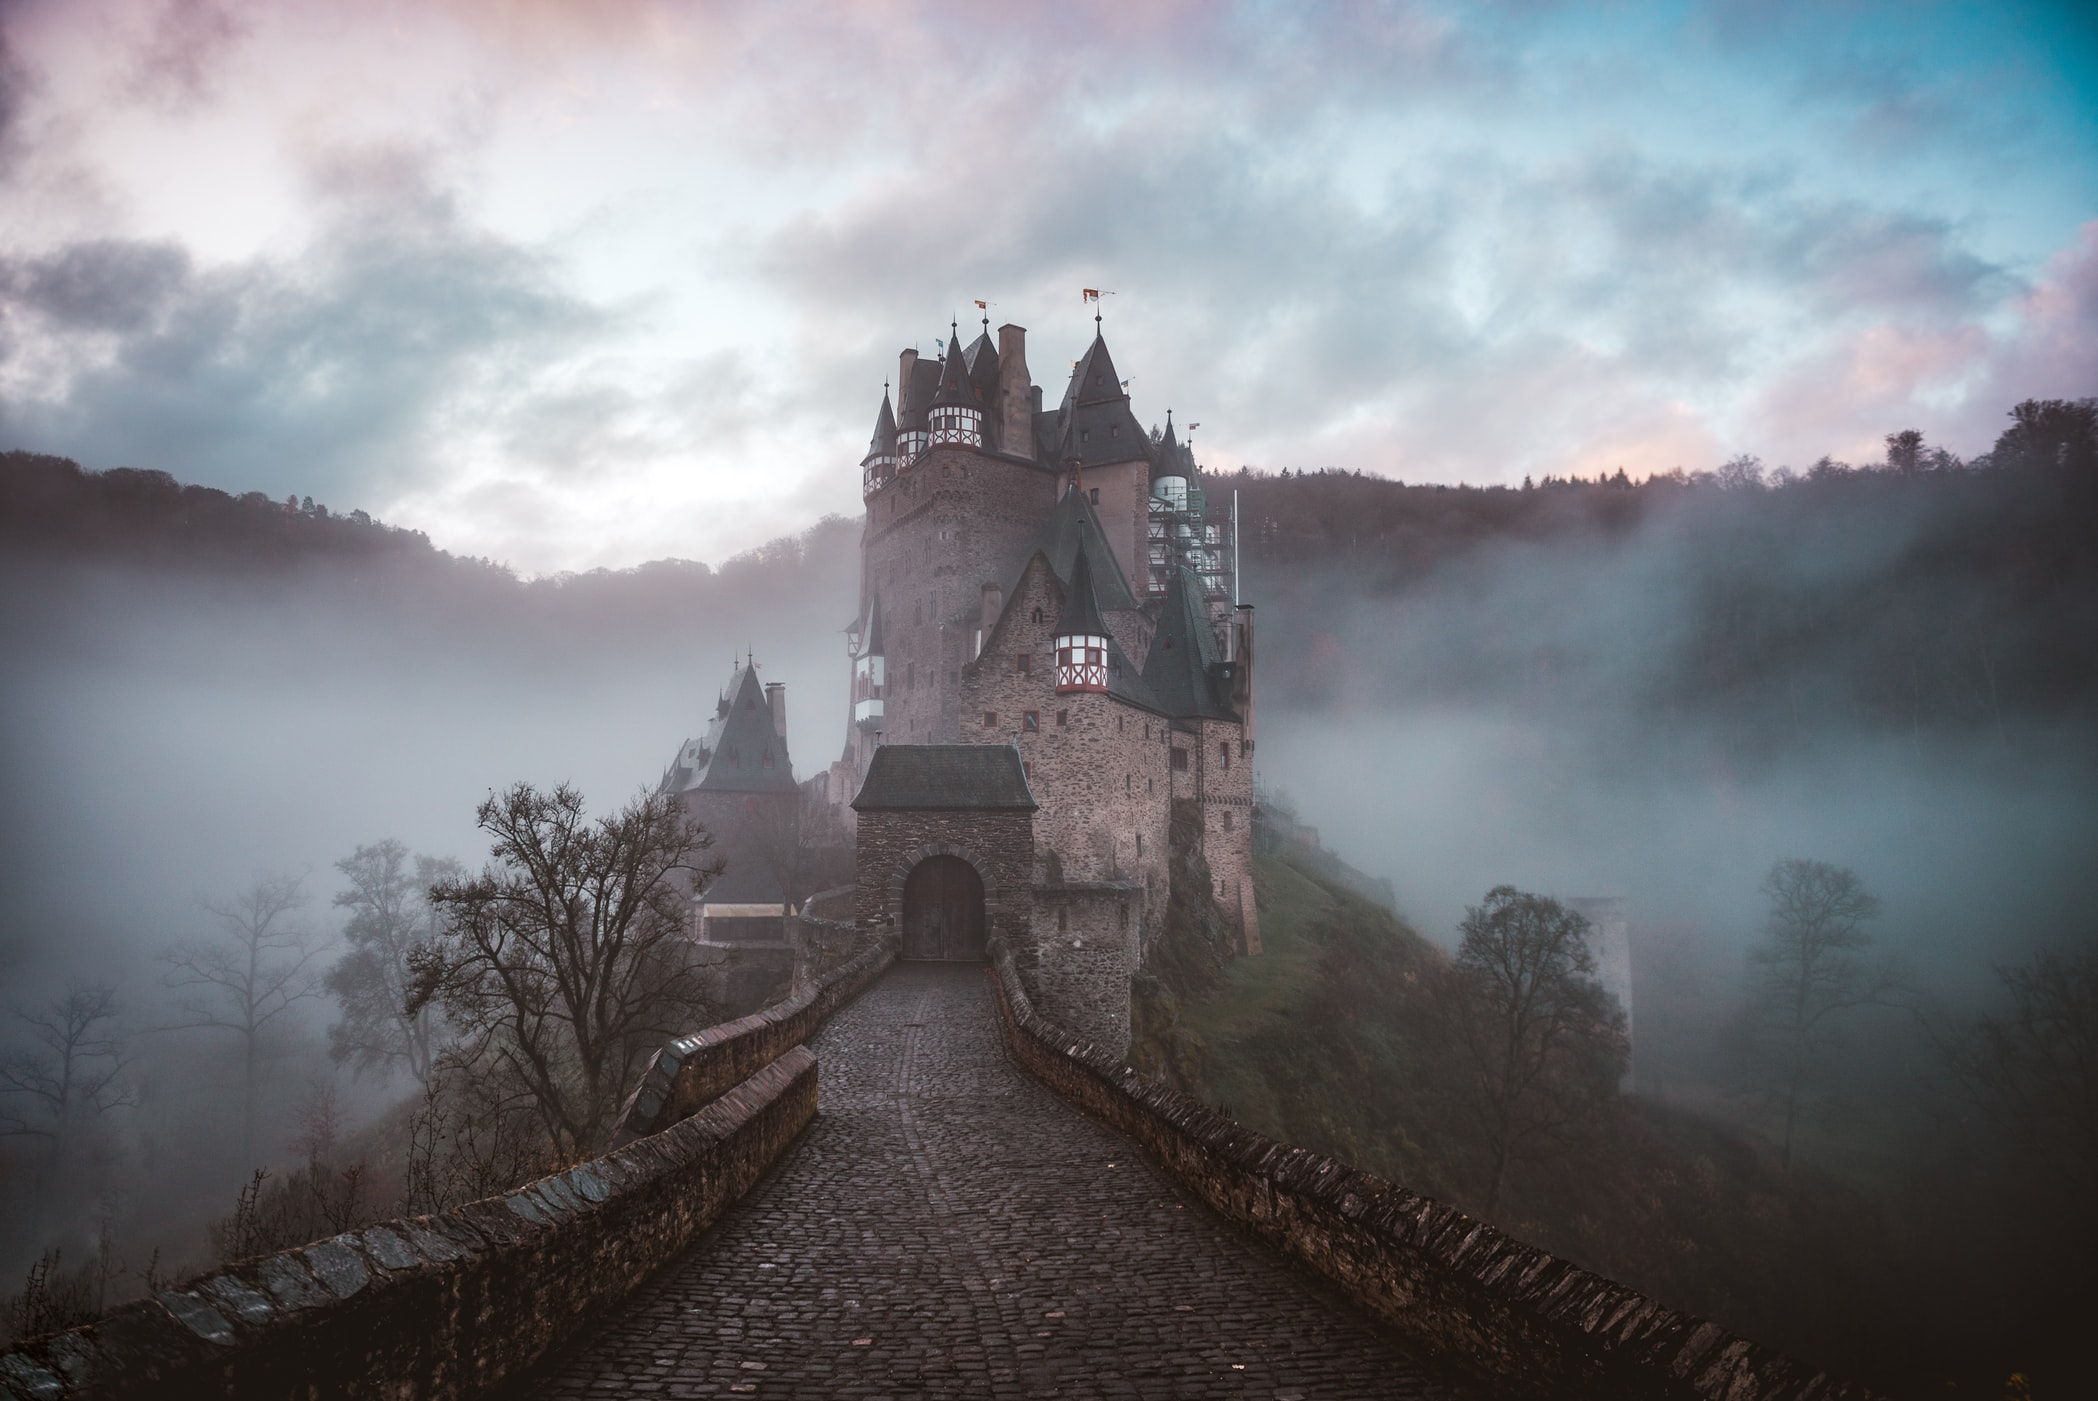 closeup photo of castle with mist